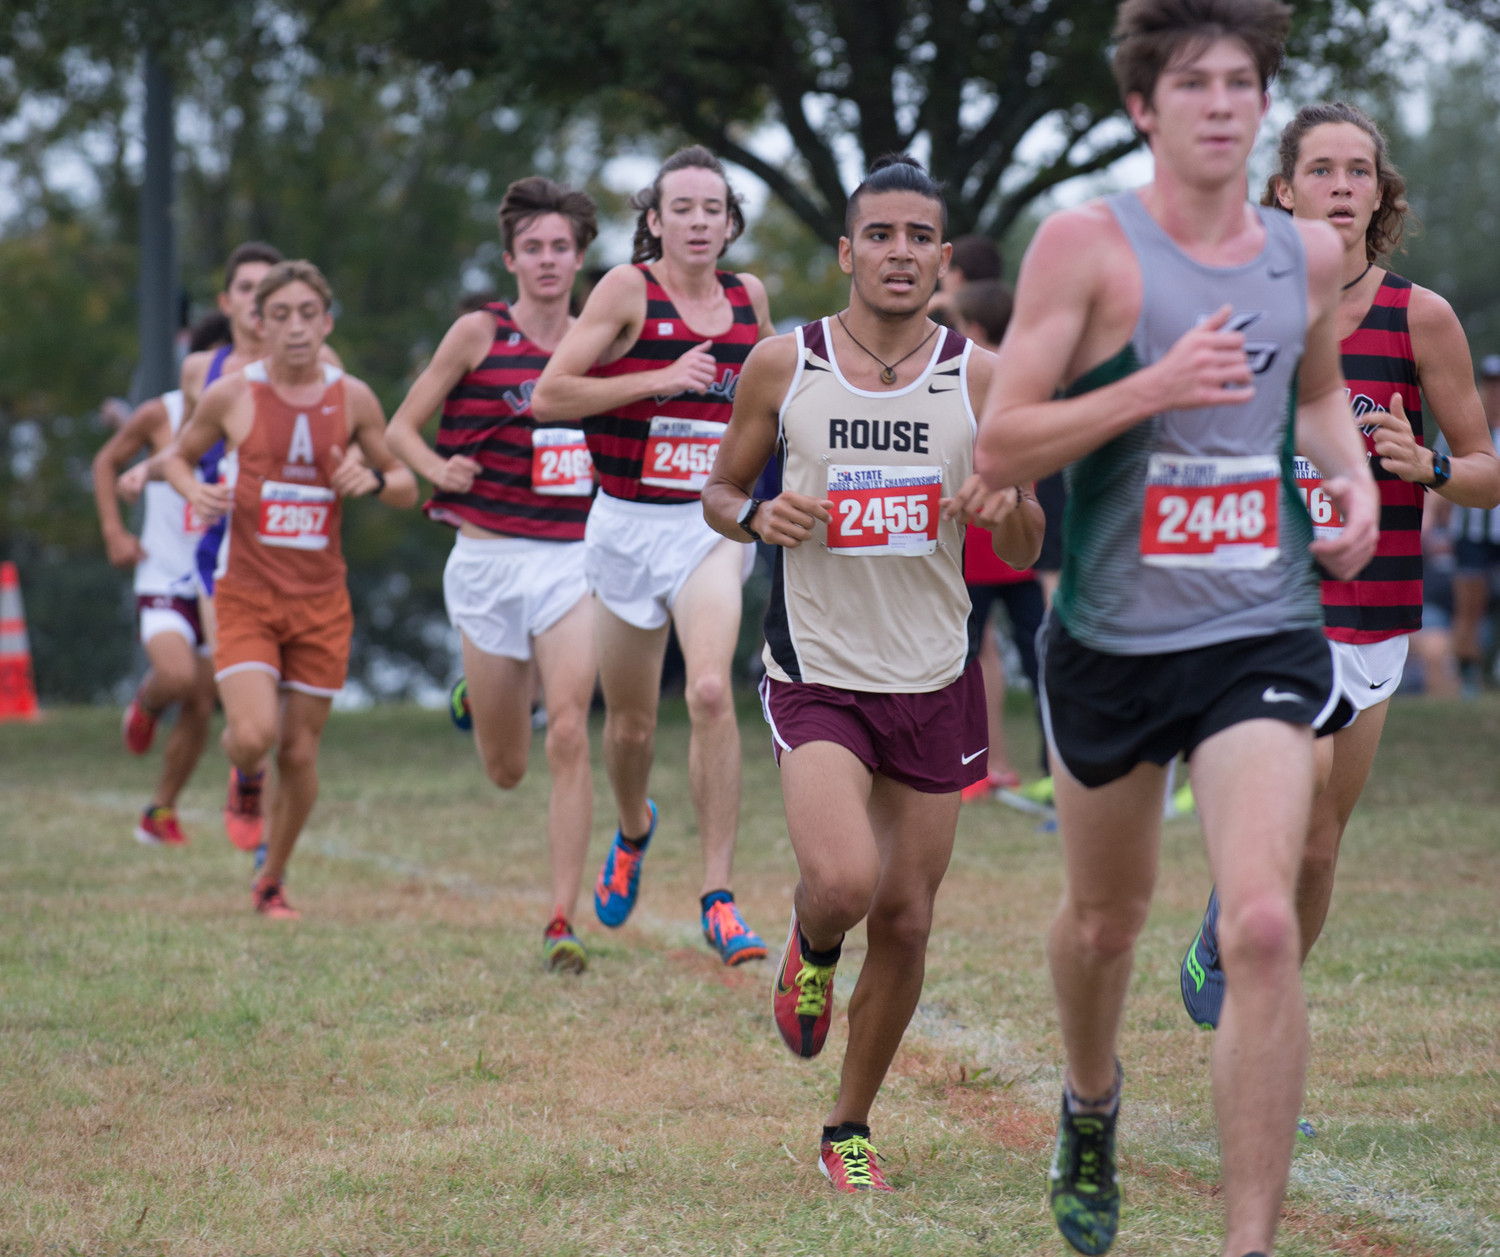 Danny Madrid of Rouse High School runs in the UIL Cross Country State Meet at Old Settlers Park in Round Rock, Texas, on Saturday, Nov. 4, 2017. Madrid finished the Class 5A boys race with an overall time of 16:03.63.